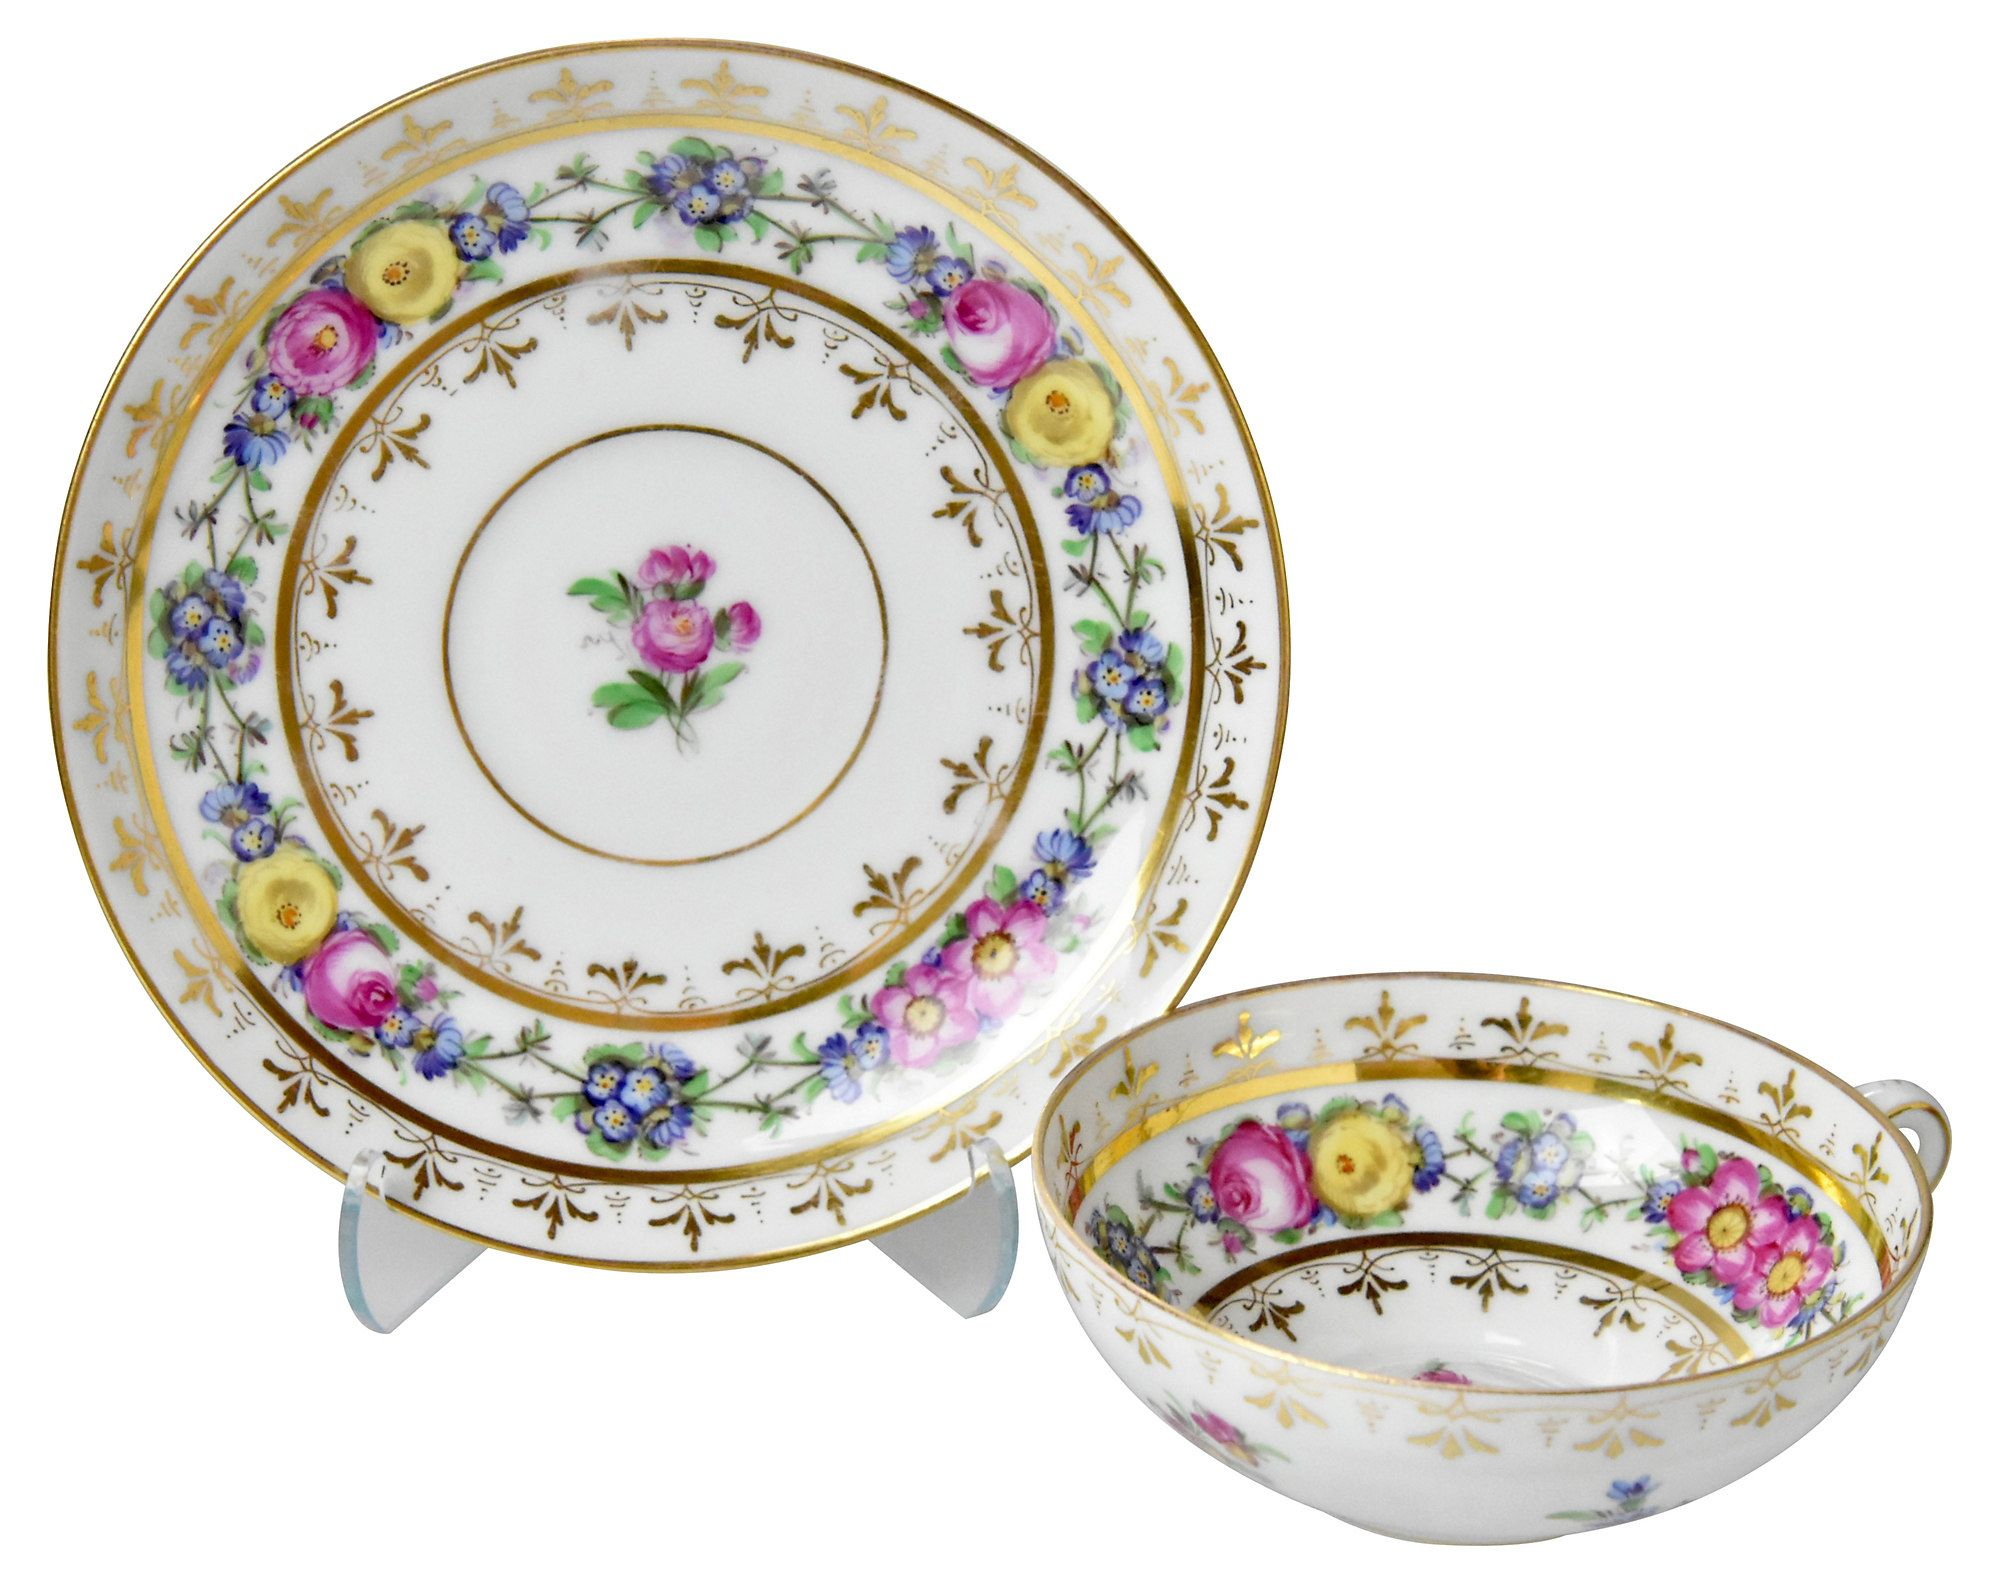 Set of 12 Dresden cups and saucers, embellished with entirely hand-painted floral designs and hand-gilded accents, expertly decorated at the studio of Ambrosius Lamm in Dresden. Marked with blue...